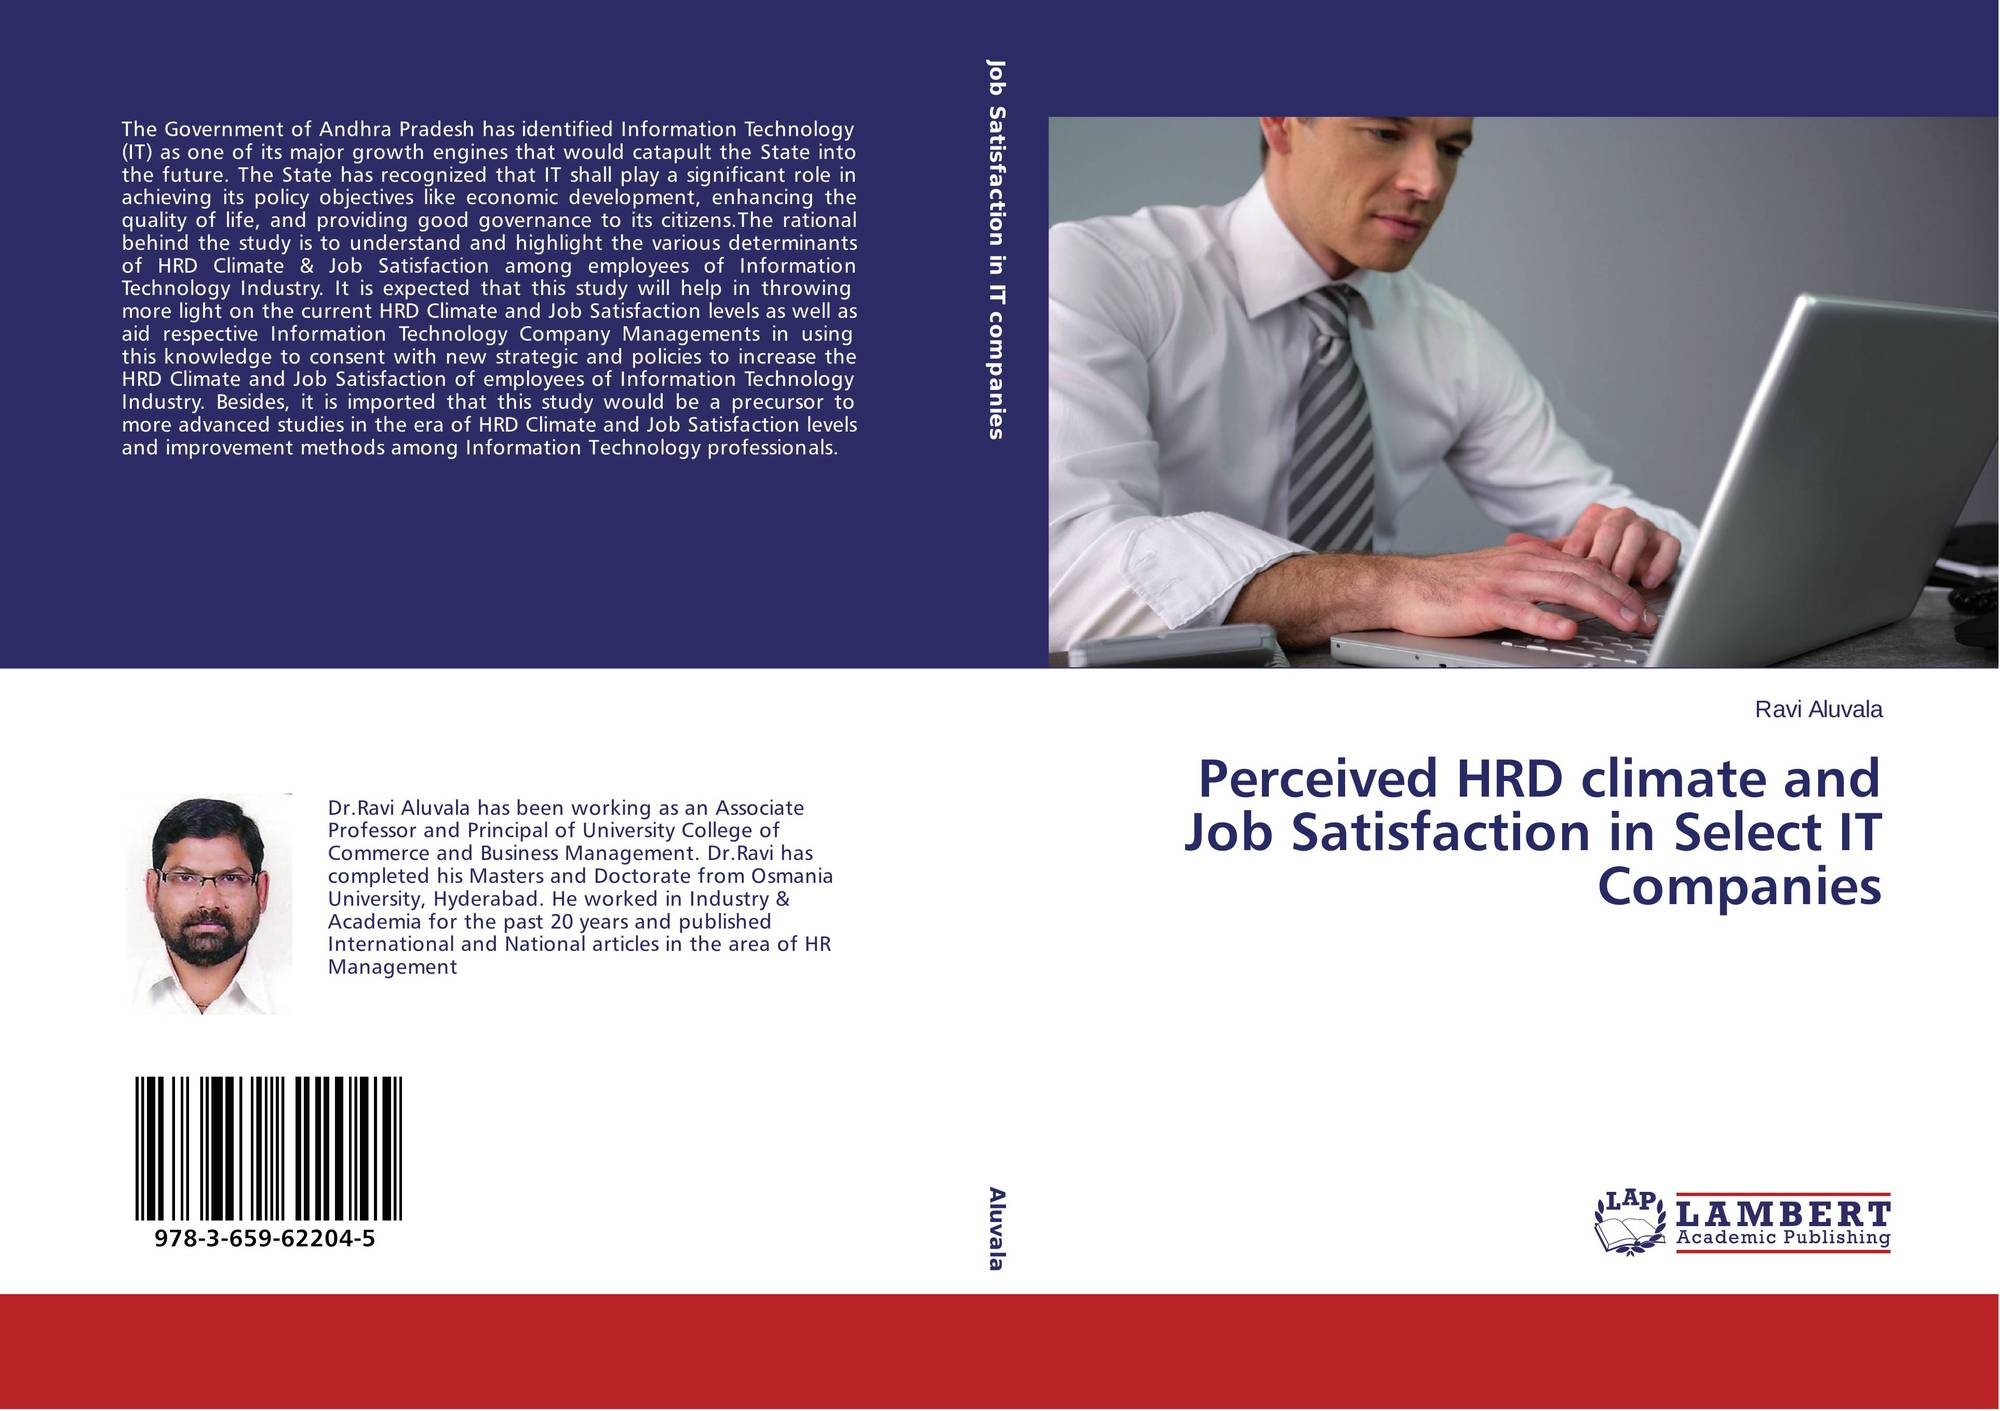 thesis hrd climate Investigating the effect of organizational climate on work engagement erik haugsnes master thesis department of psychology university of oslo keywords: work engagement, global climate, training climate, job-demands resource (human resource development) and work engagement.